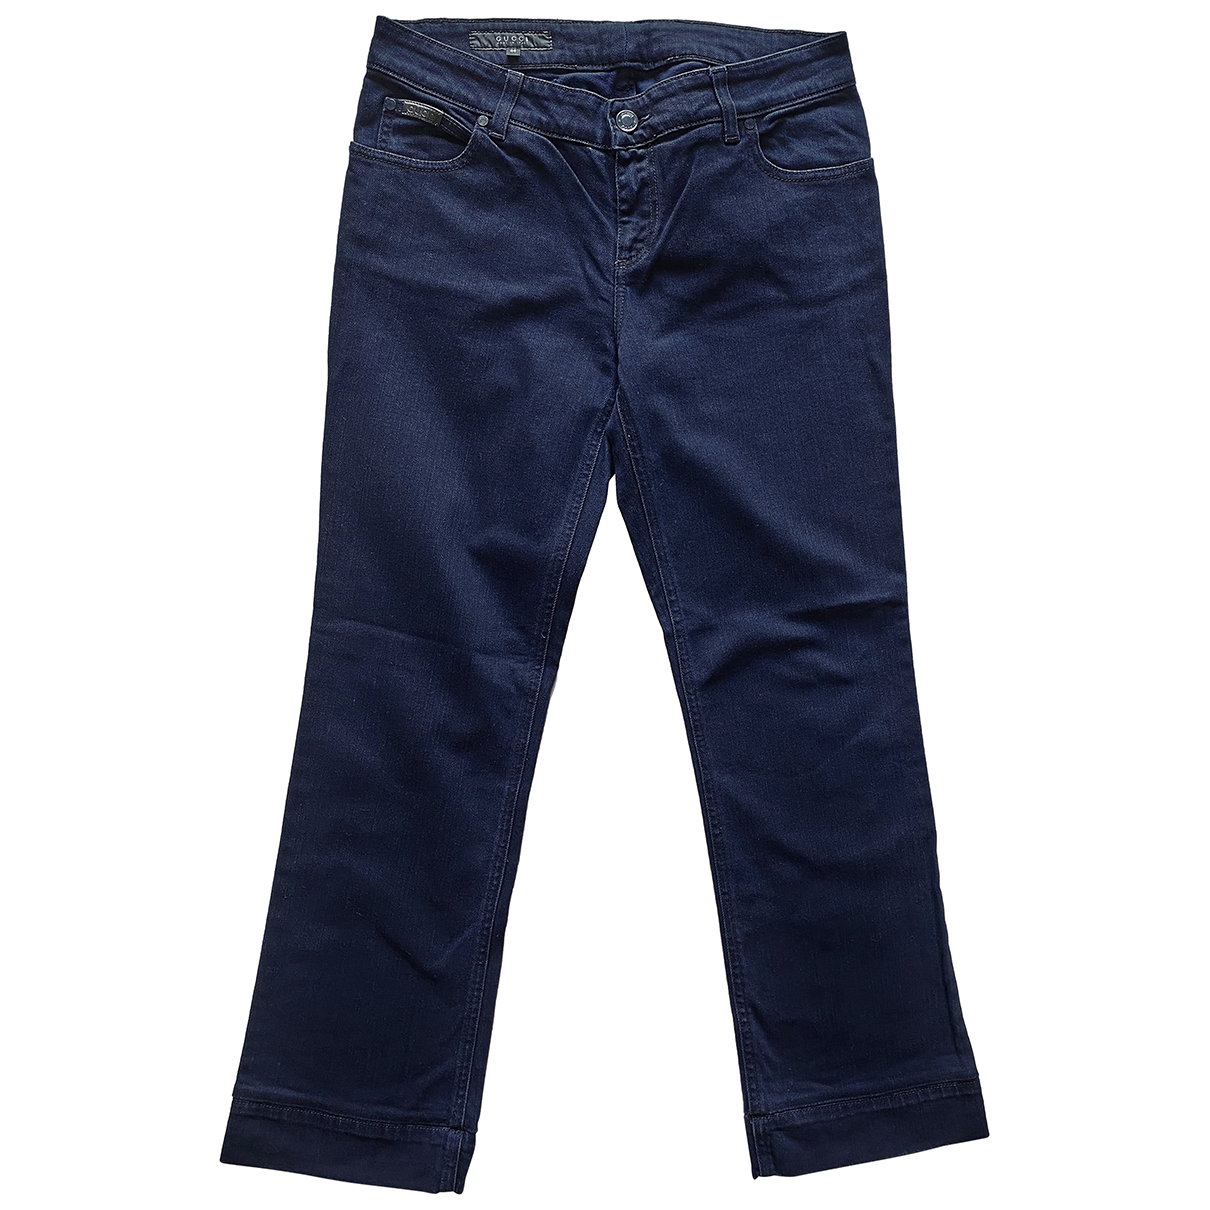 Gucci \N Navy Cotton - elasthane Jeans for Women 40 FR